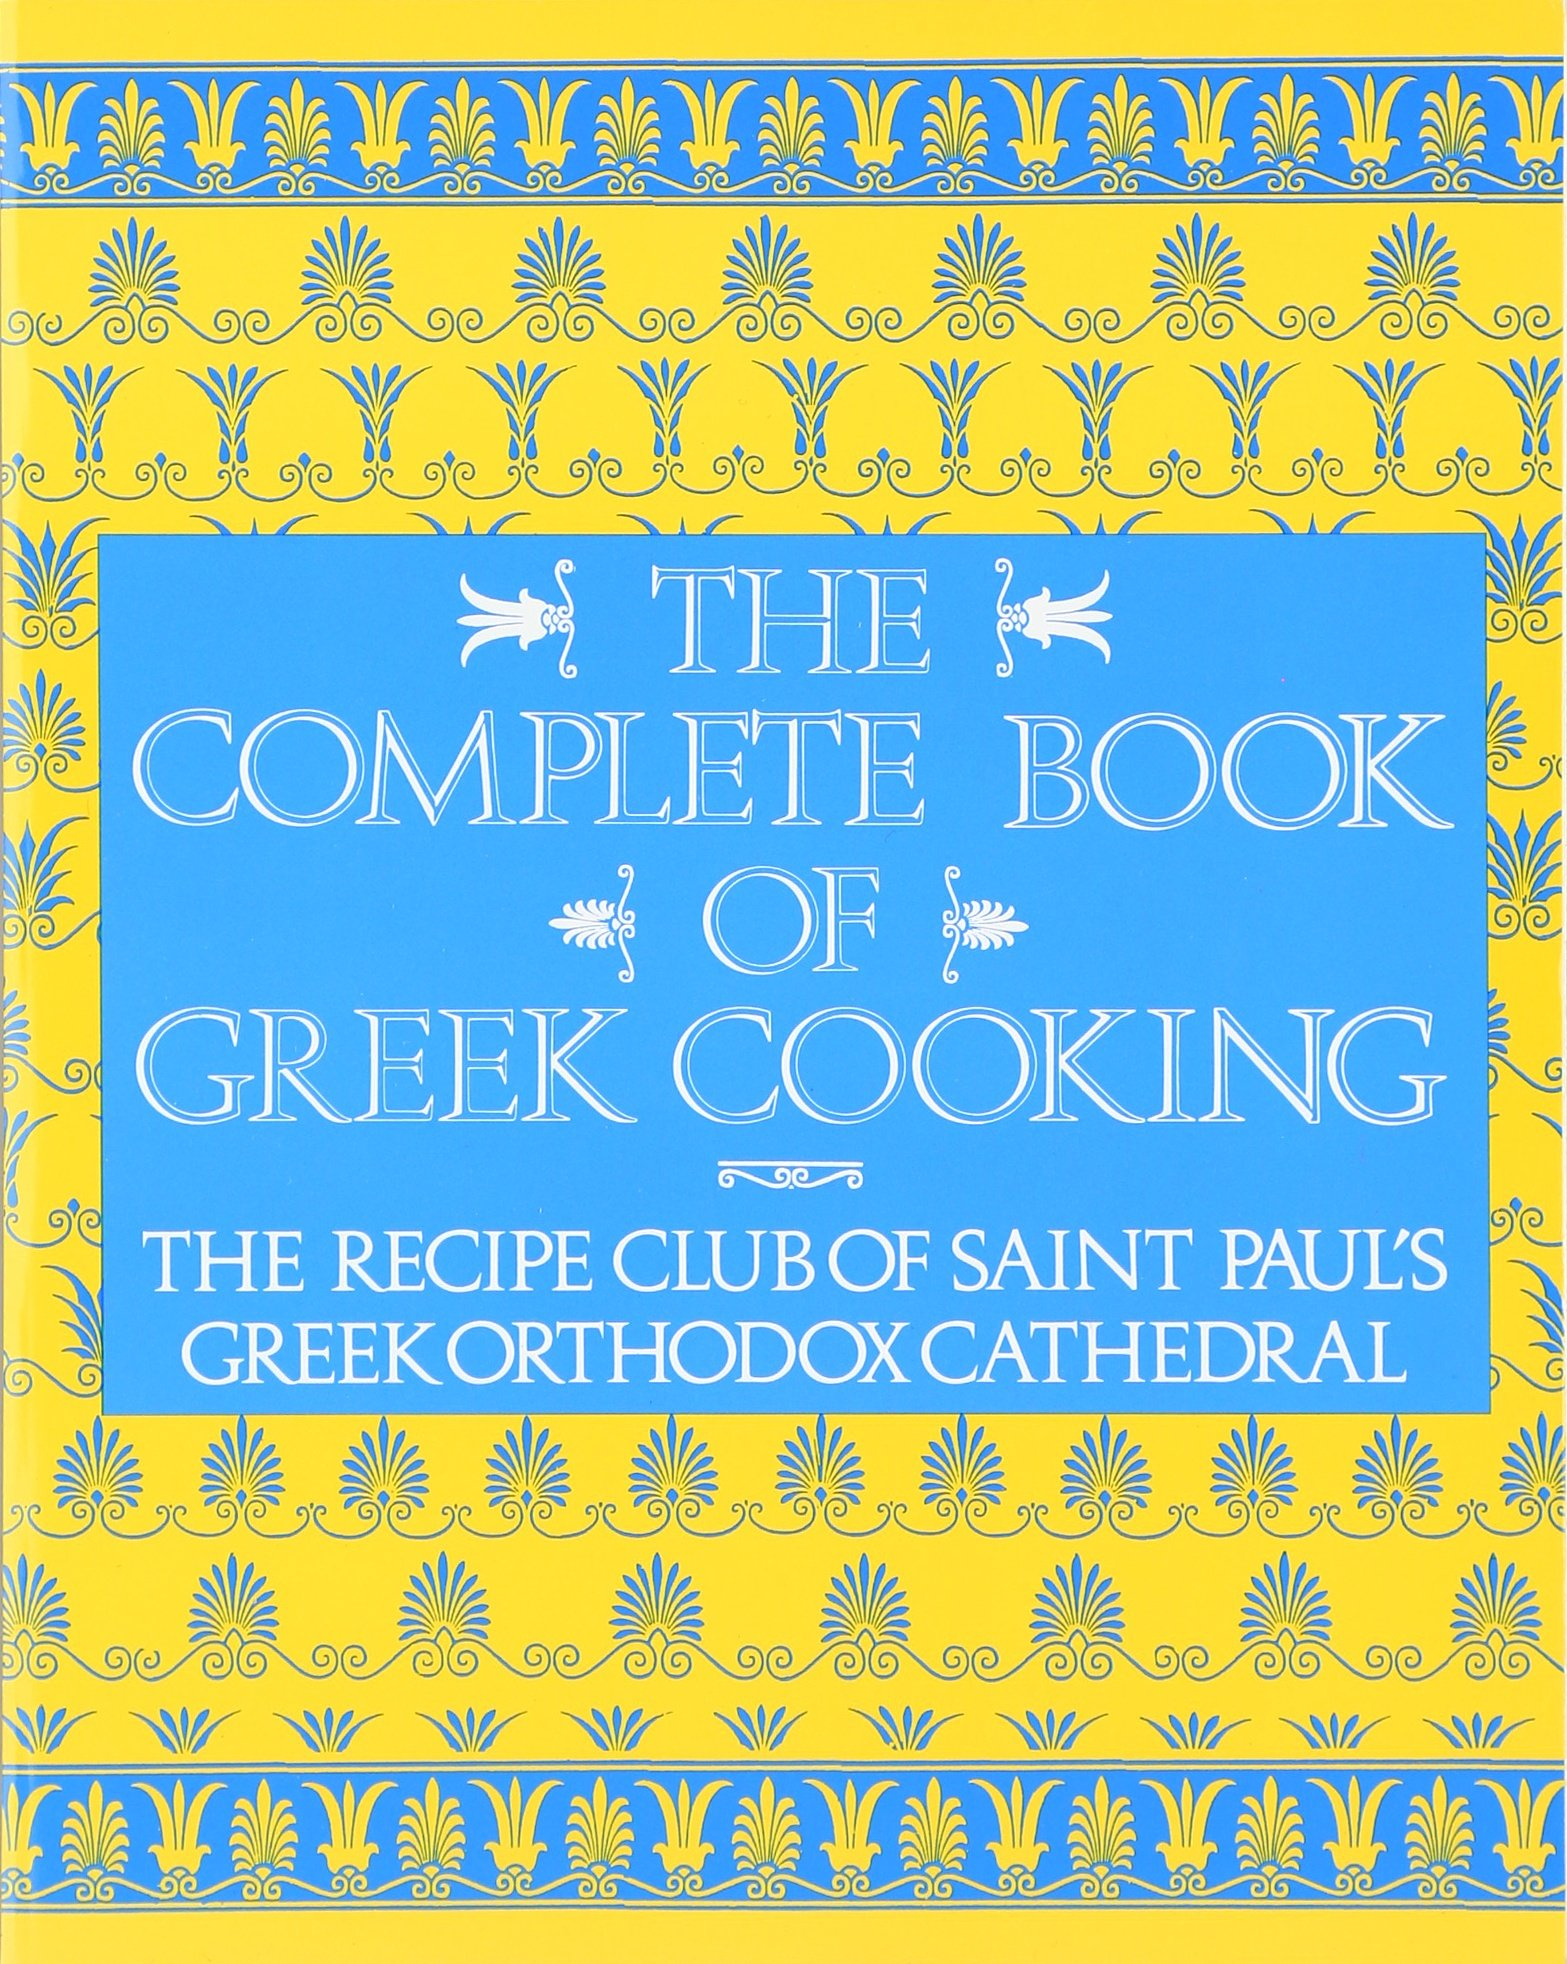 The Complete Book of Greek Cooking: The Recipe Club of St. Paul's Orthodox  Cathedral Paperback – June 5, 1991